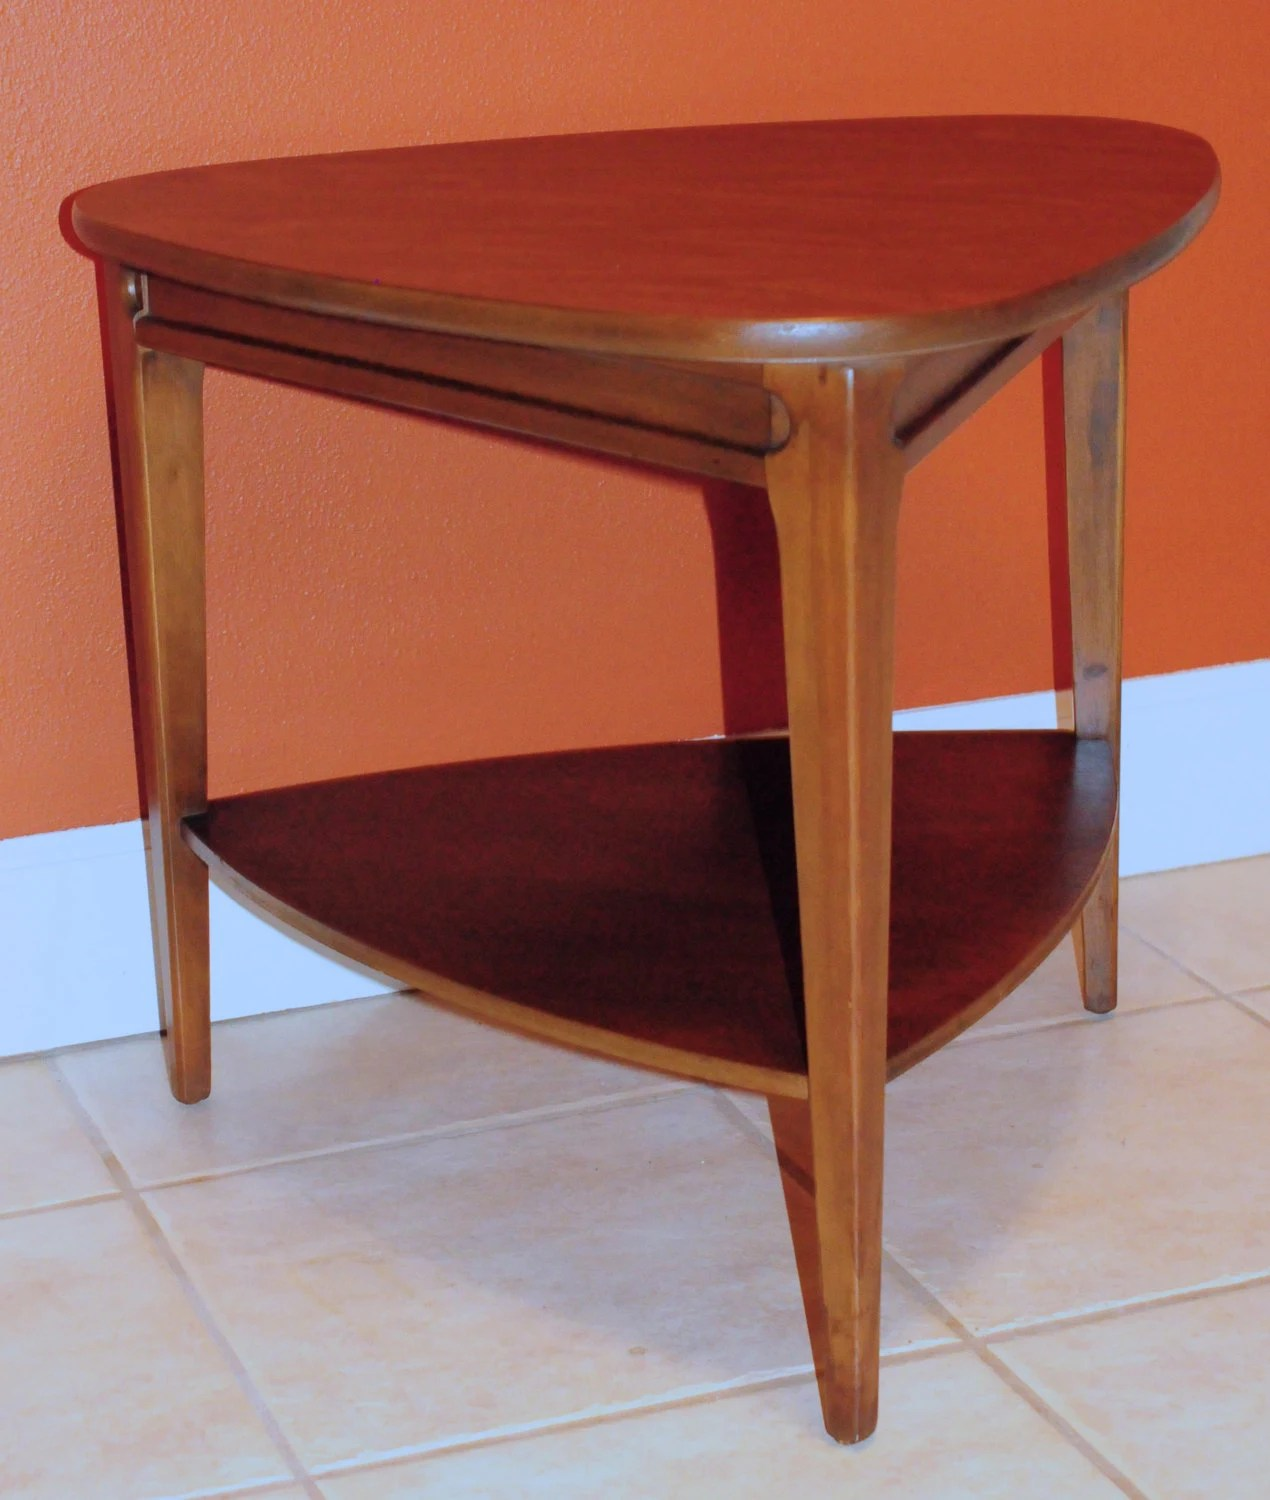 guitar shaped chair matrix fishing review beautiful mid century triangle end table by mersman.